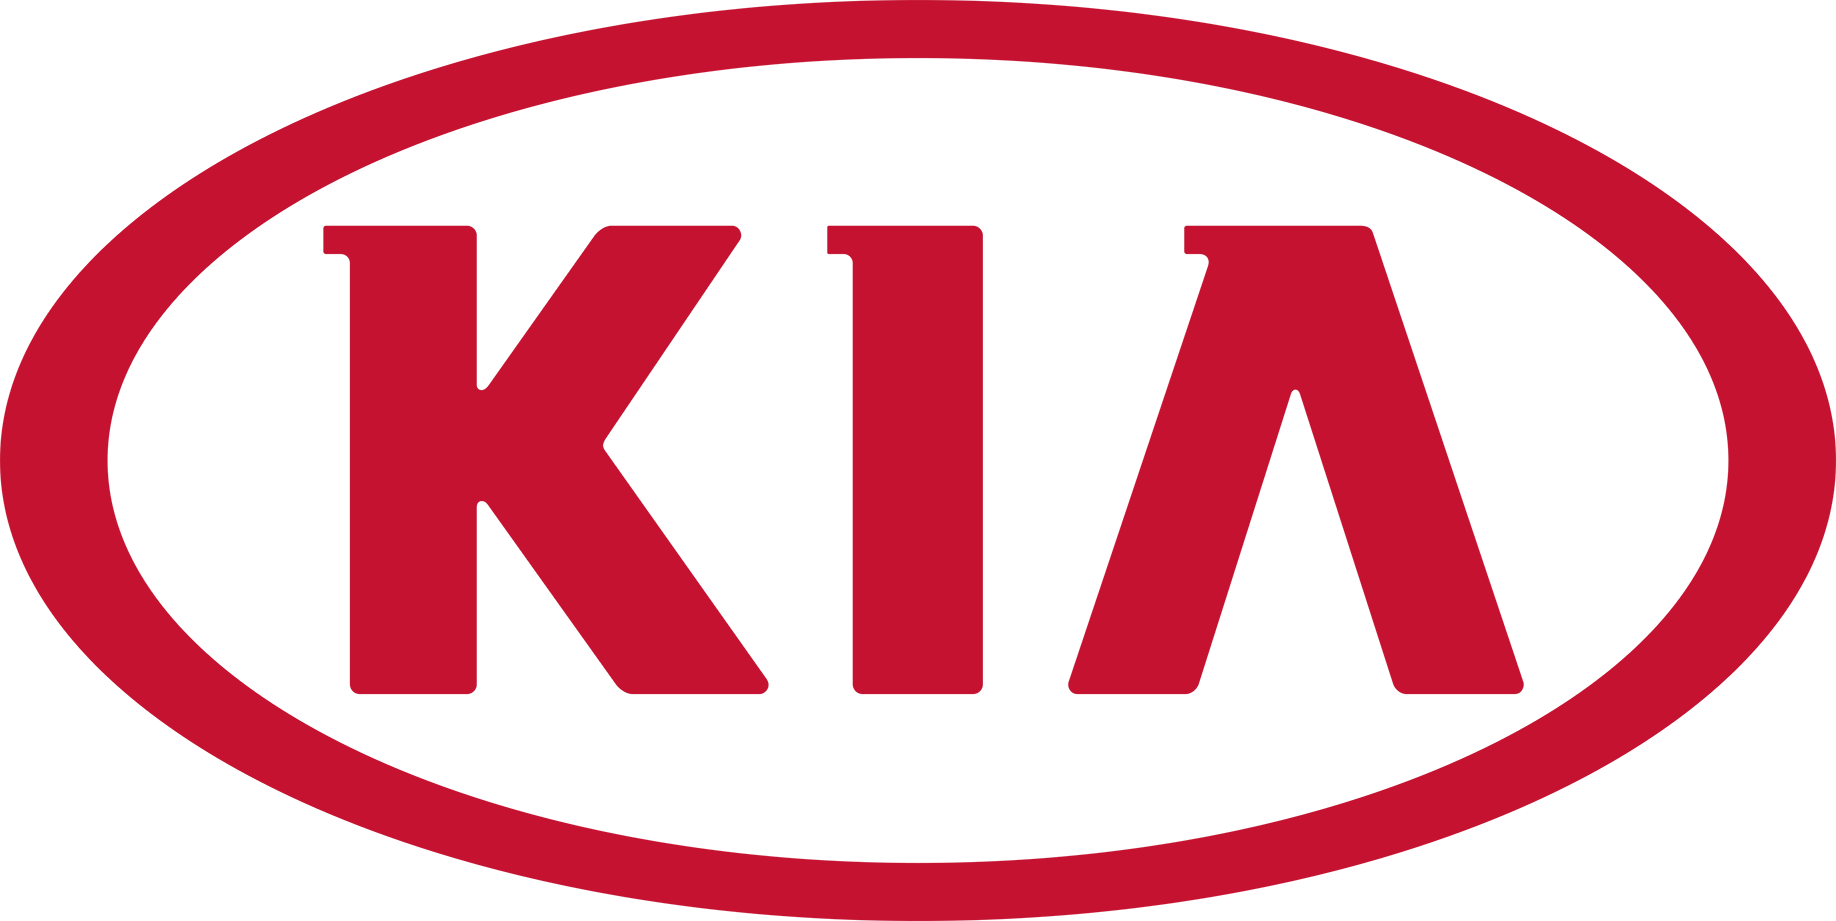 Top korean car brands was founded in 1944 the companys headquarters are located in seoul south korea kia is the second largest automobile manufacturer in south korea biocorpaavc